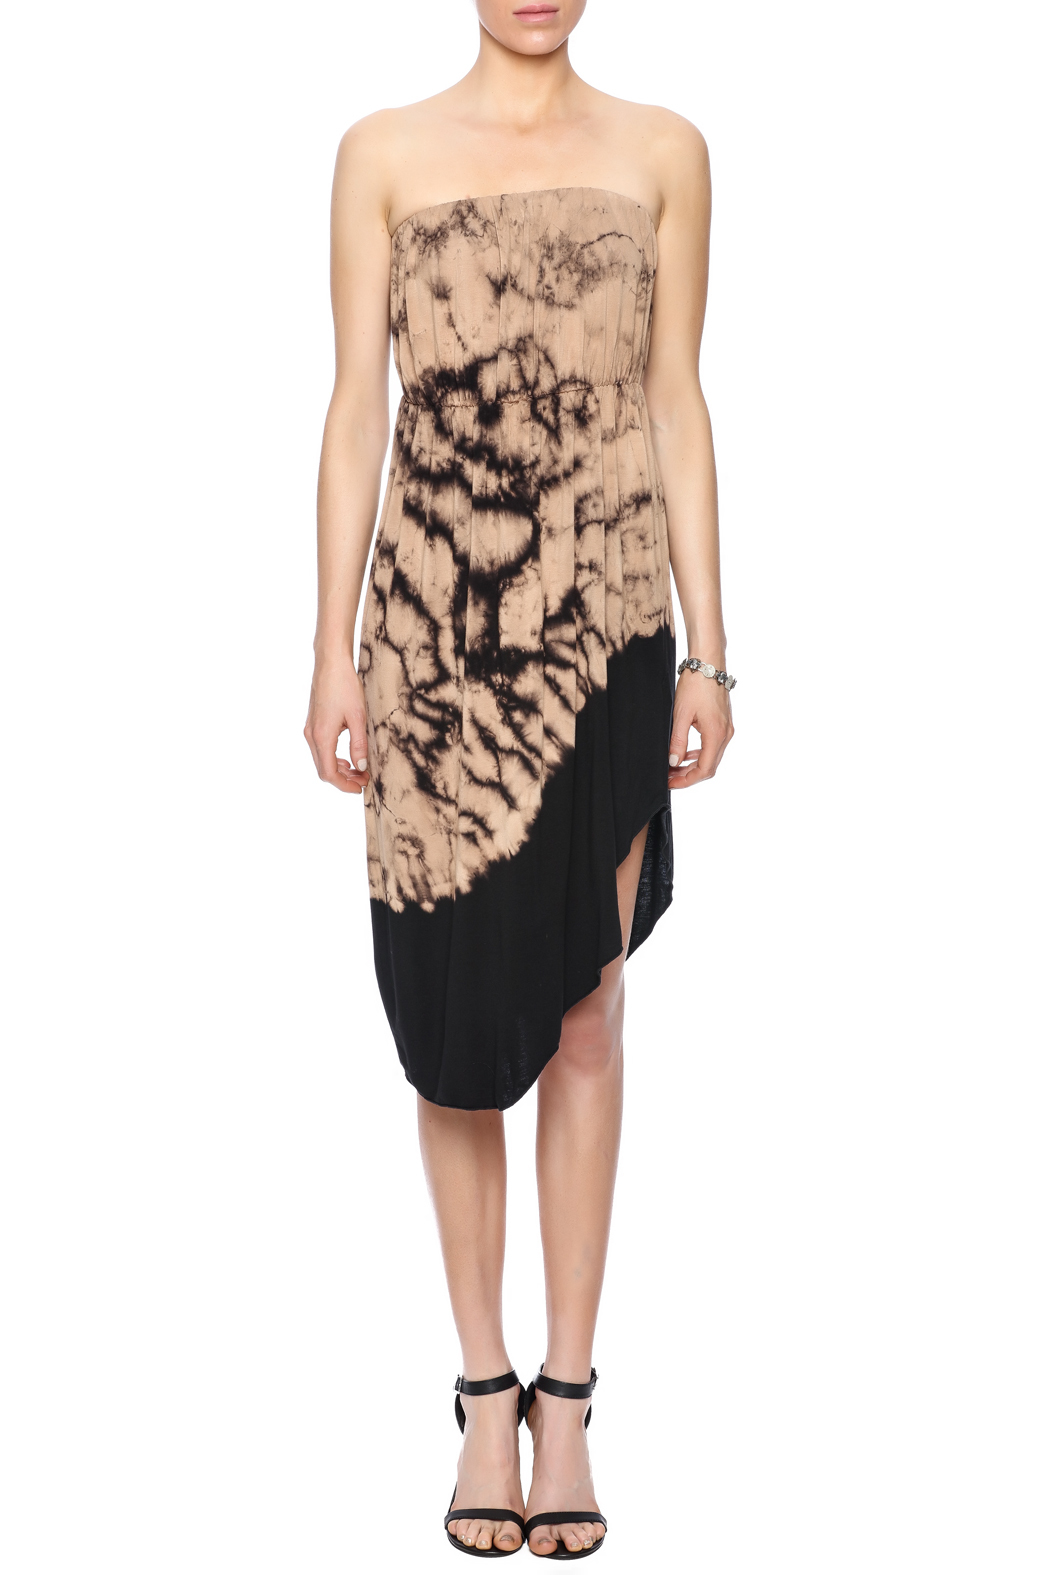 Urban X Tie Dye Dress From Hawaii By Uptown Closet Shoptiques